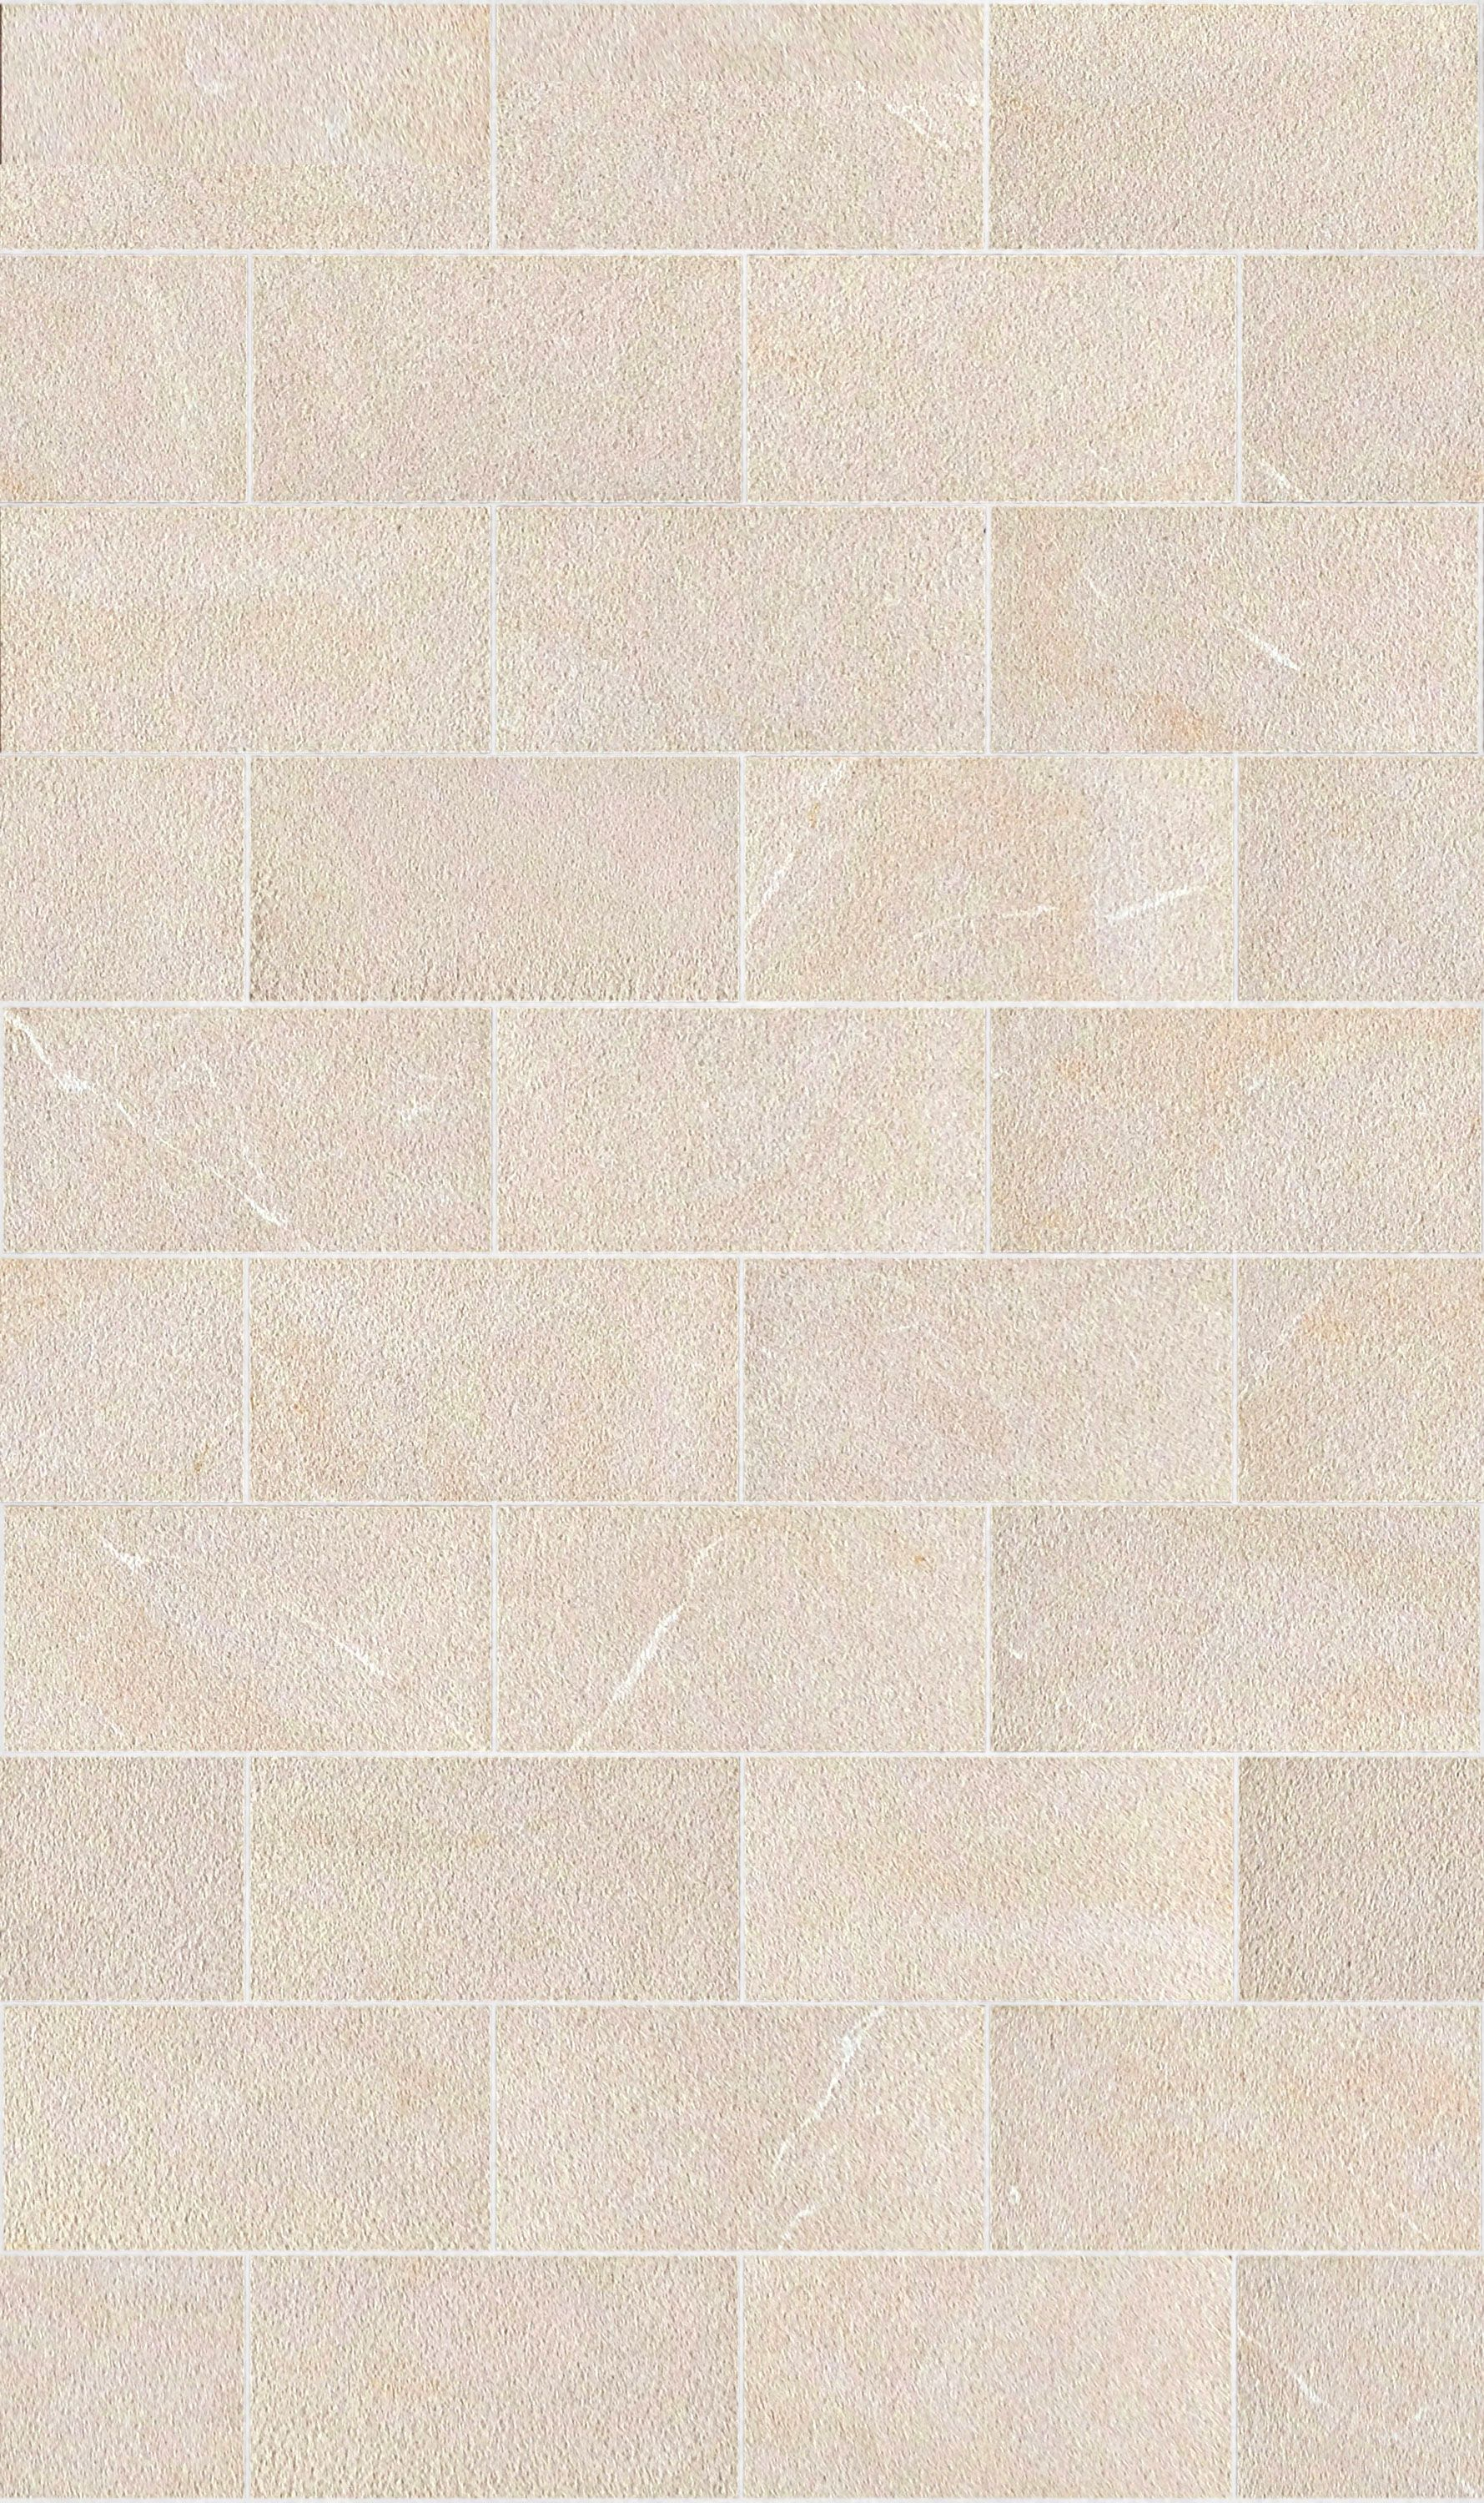 blonde sandstone pale masonry seamless texture | materials ...